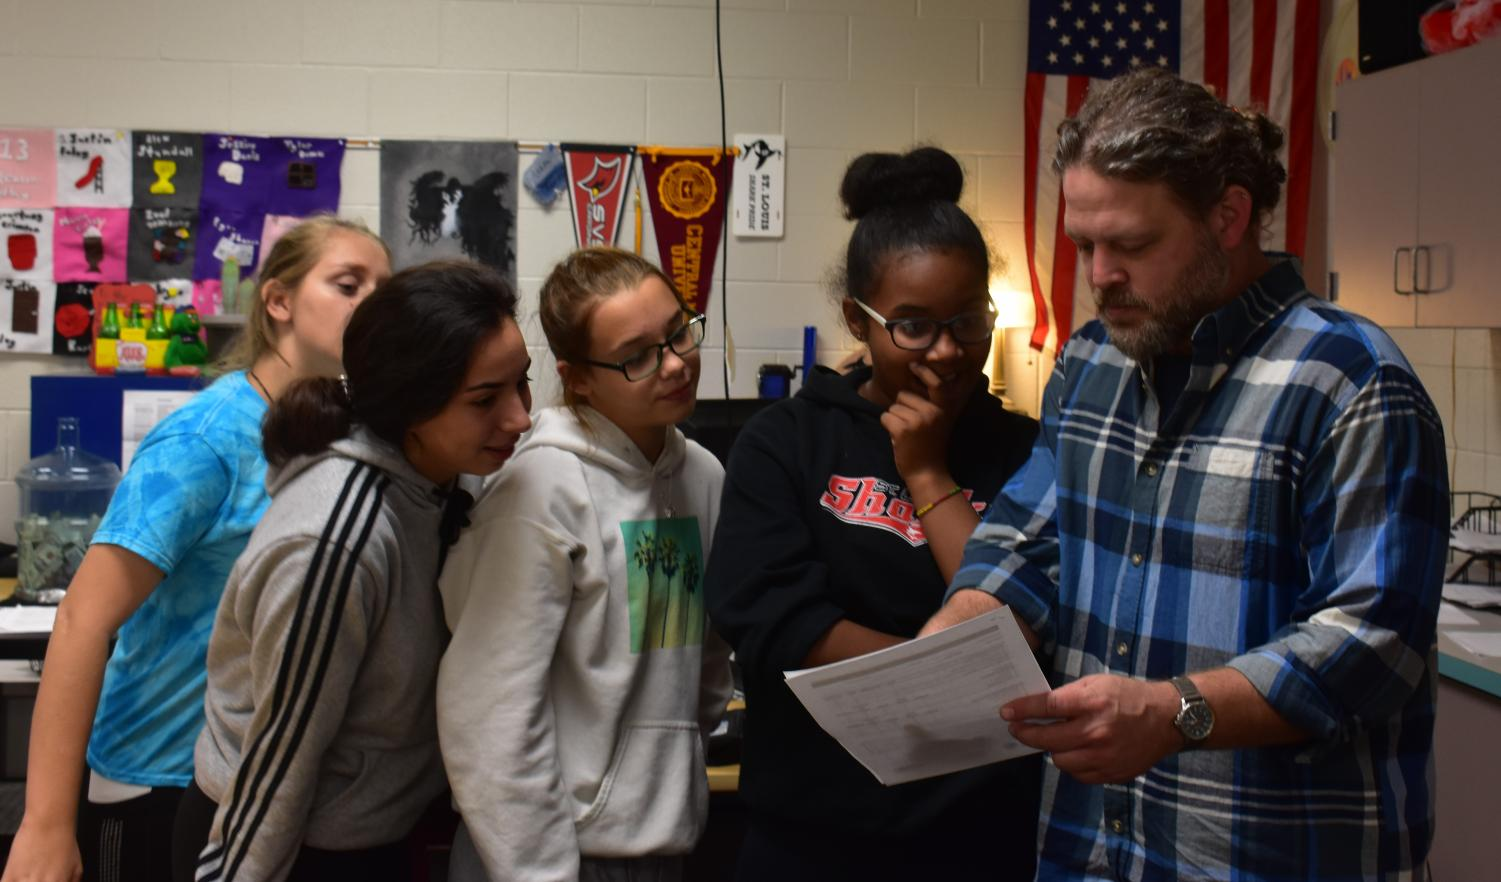 Mr. Caszatt is a great teacher, and many students have expressed how they enjoy his classes.